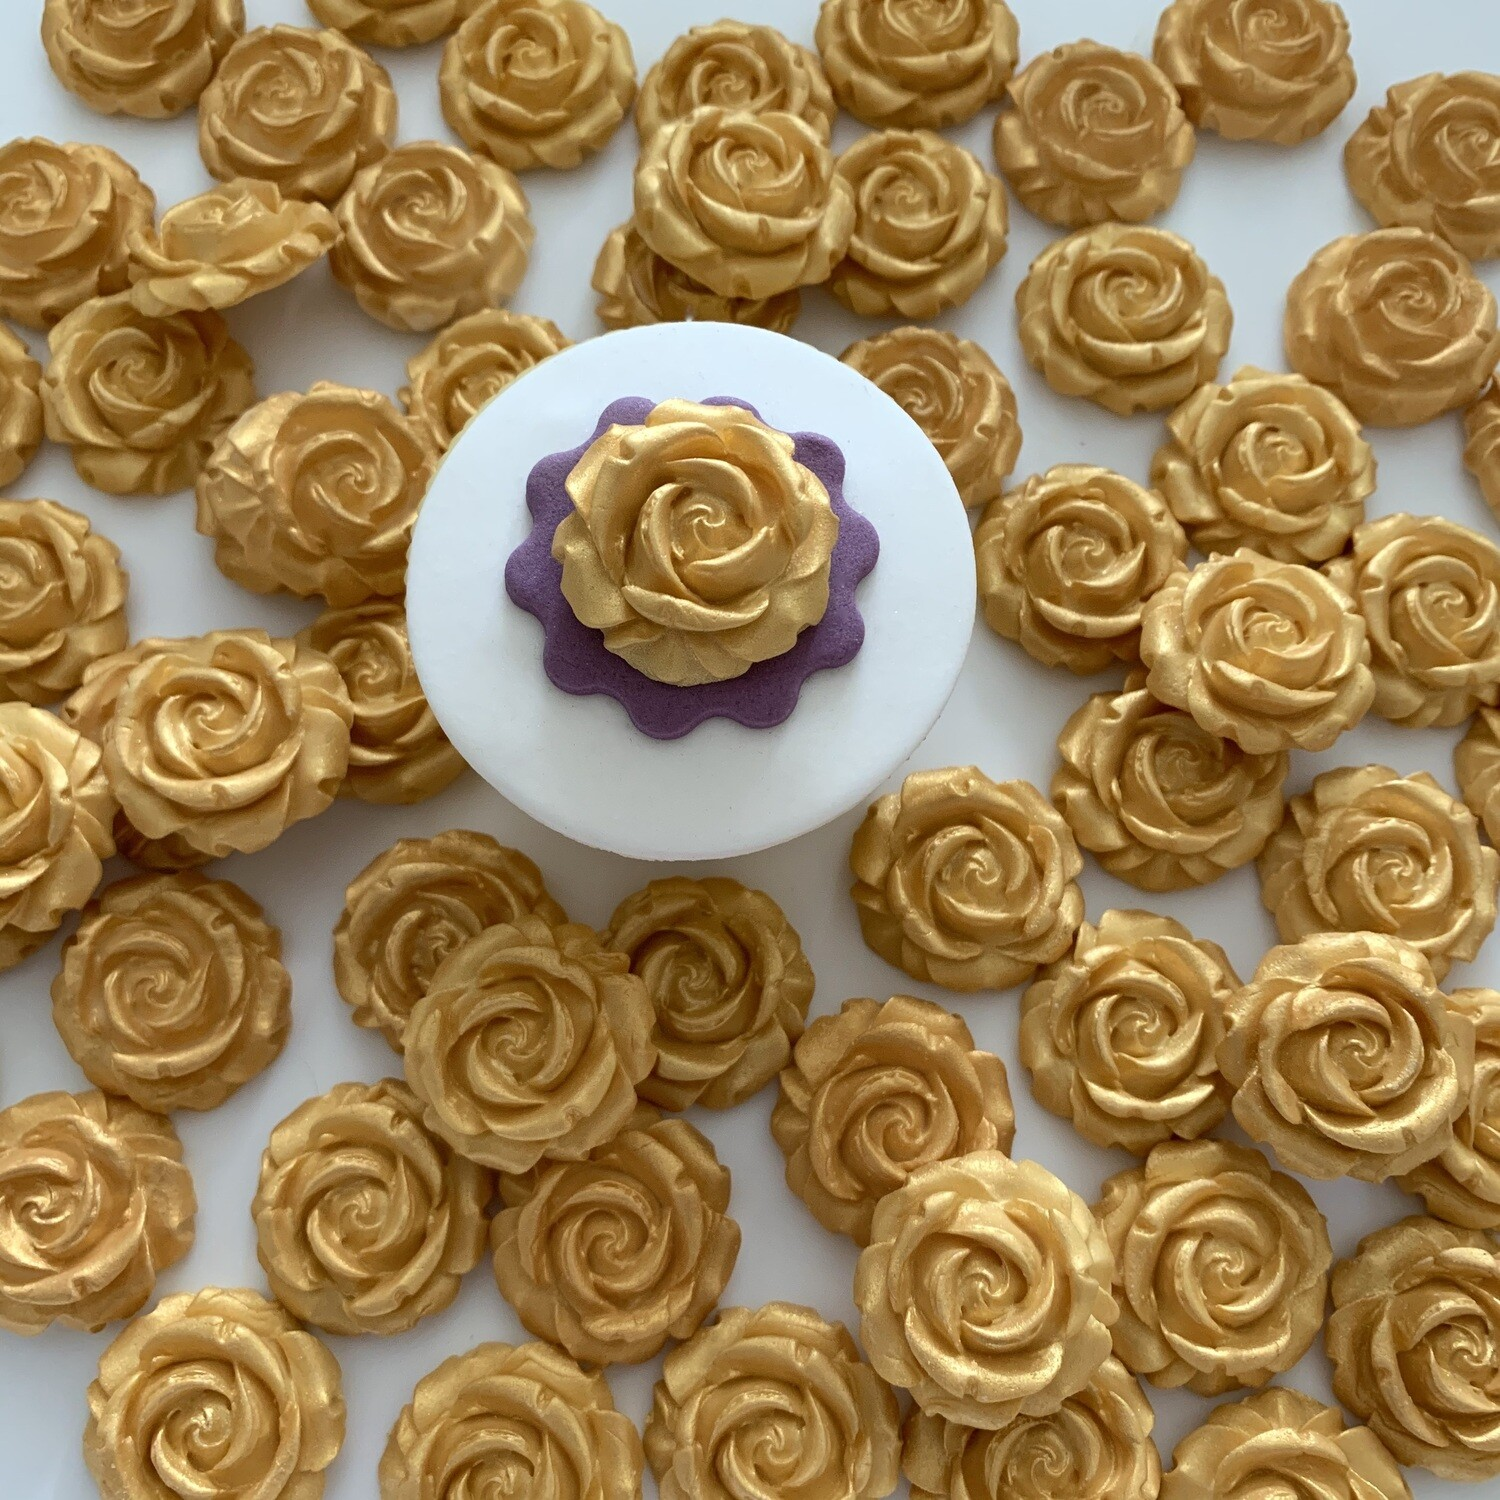 SALE 60 Gold Roses